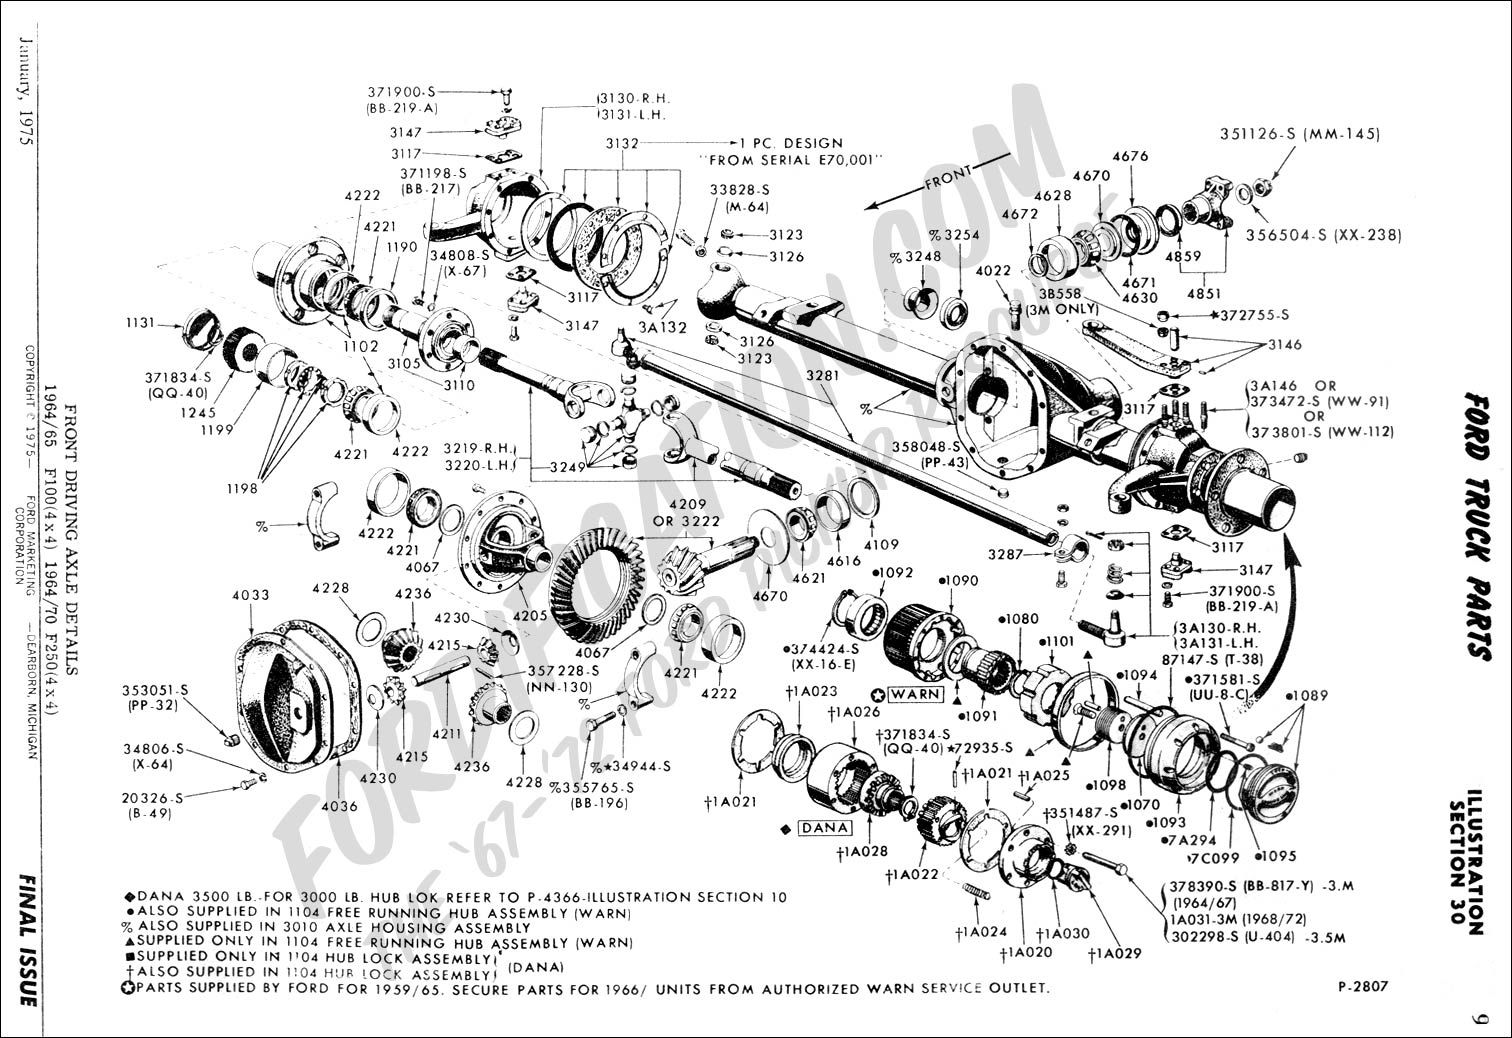 1368135 1967 F100 4x4 Coil Springs Shock Absorbers additionally 1965 Corvette Wiring Diagram besides 2003 F150 Front Brake Parts Diagram also P 0900c15280087b80 besides 2anvc Firing Order Distributer 1969 Ford Fairlane. on 1979 ford f100 engine diagram